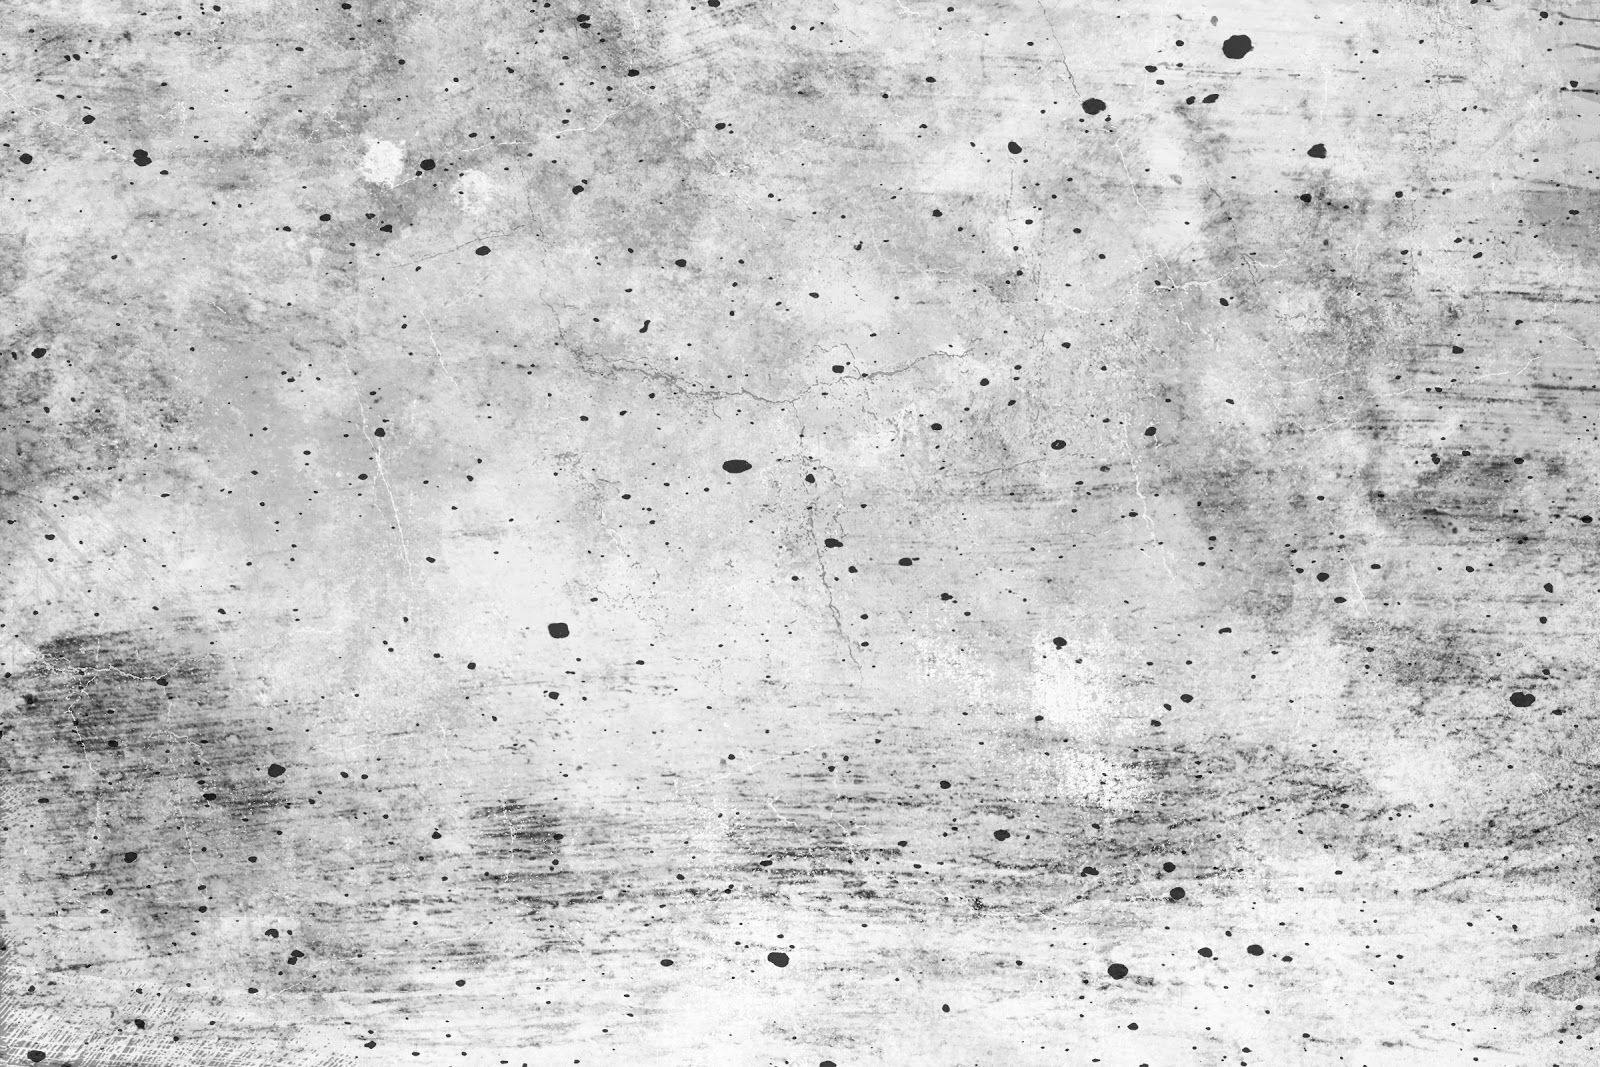 Shadowhouse Creations B/W Grunge Texture Set Grungy